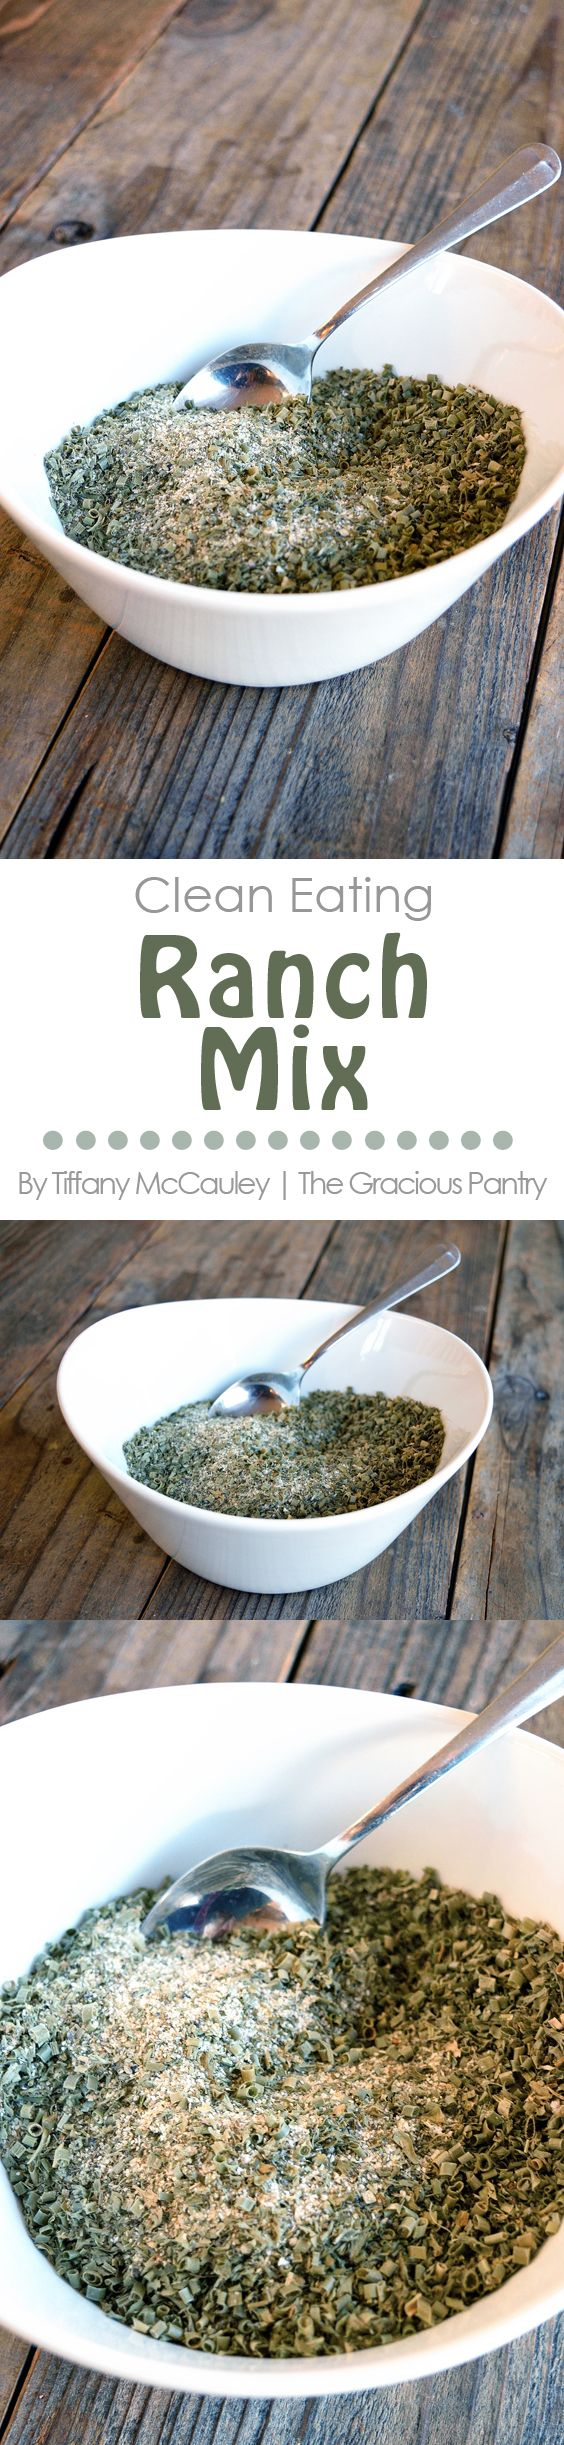 Clean Eating Recipes | Ranch Mix Recipe | Clean Eating Ranch Mix Recipe | Healthy Recipes